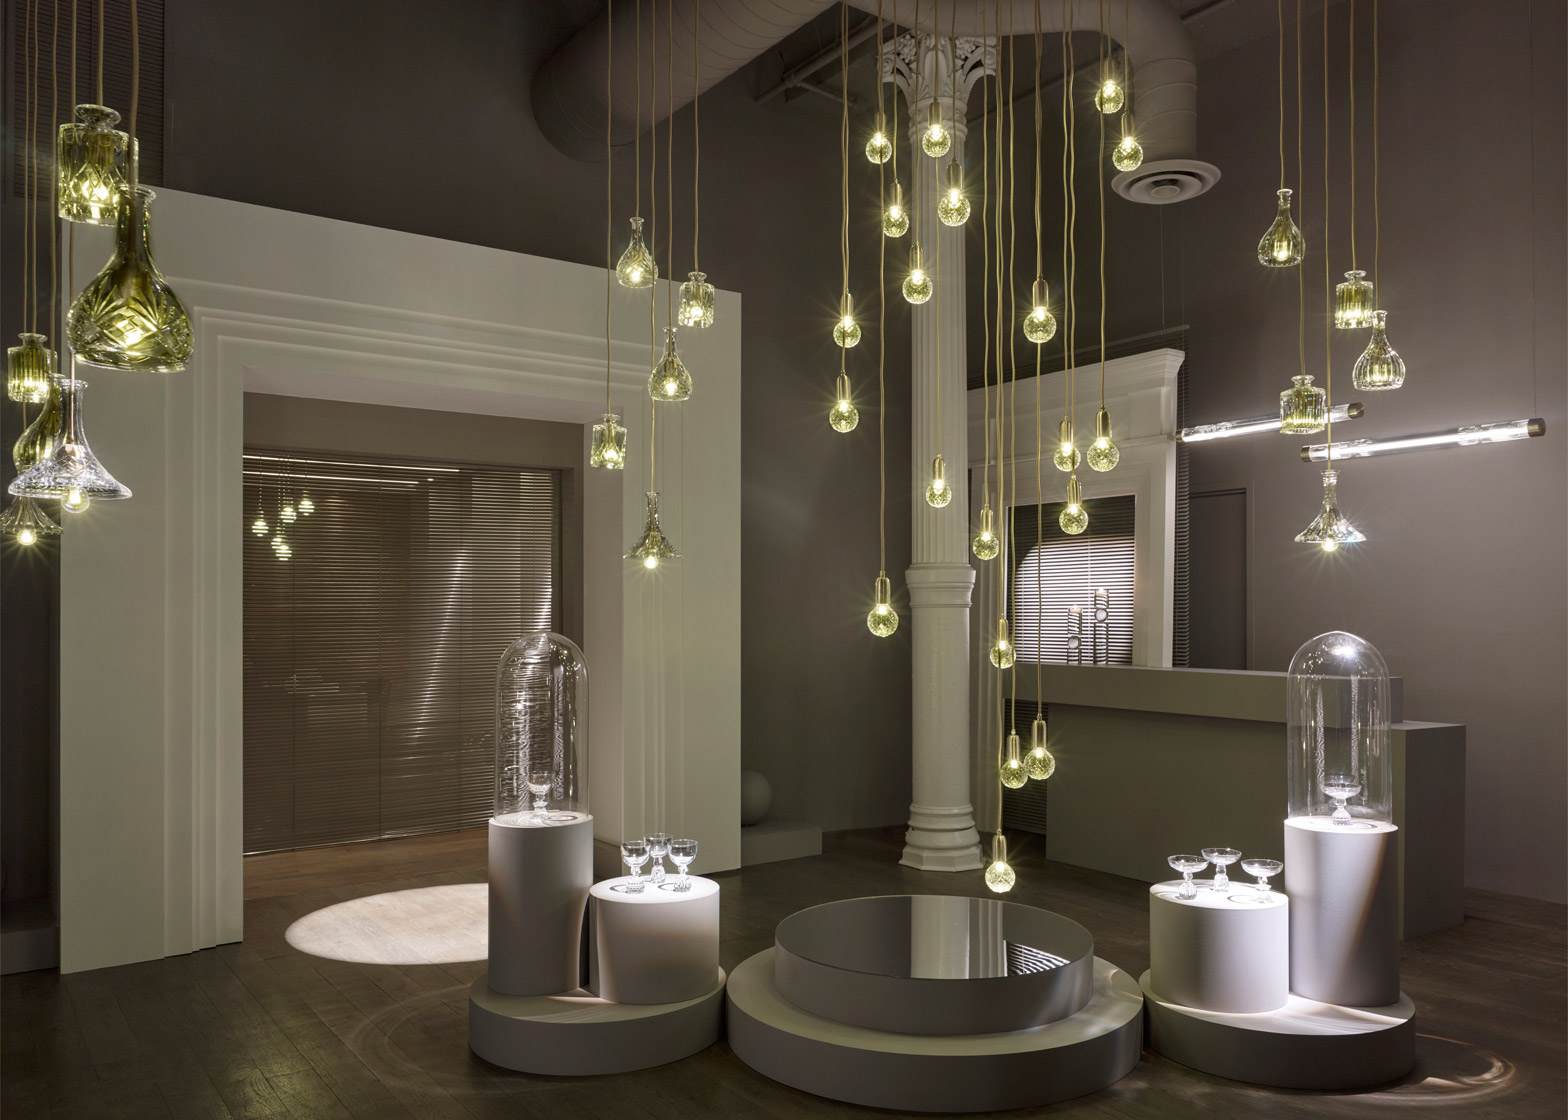 Lee Broom store Soho New York City, USA